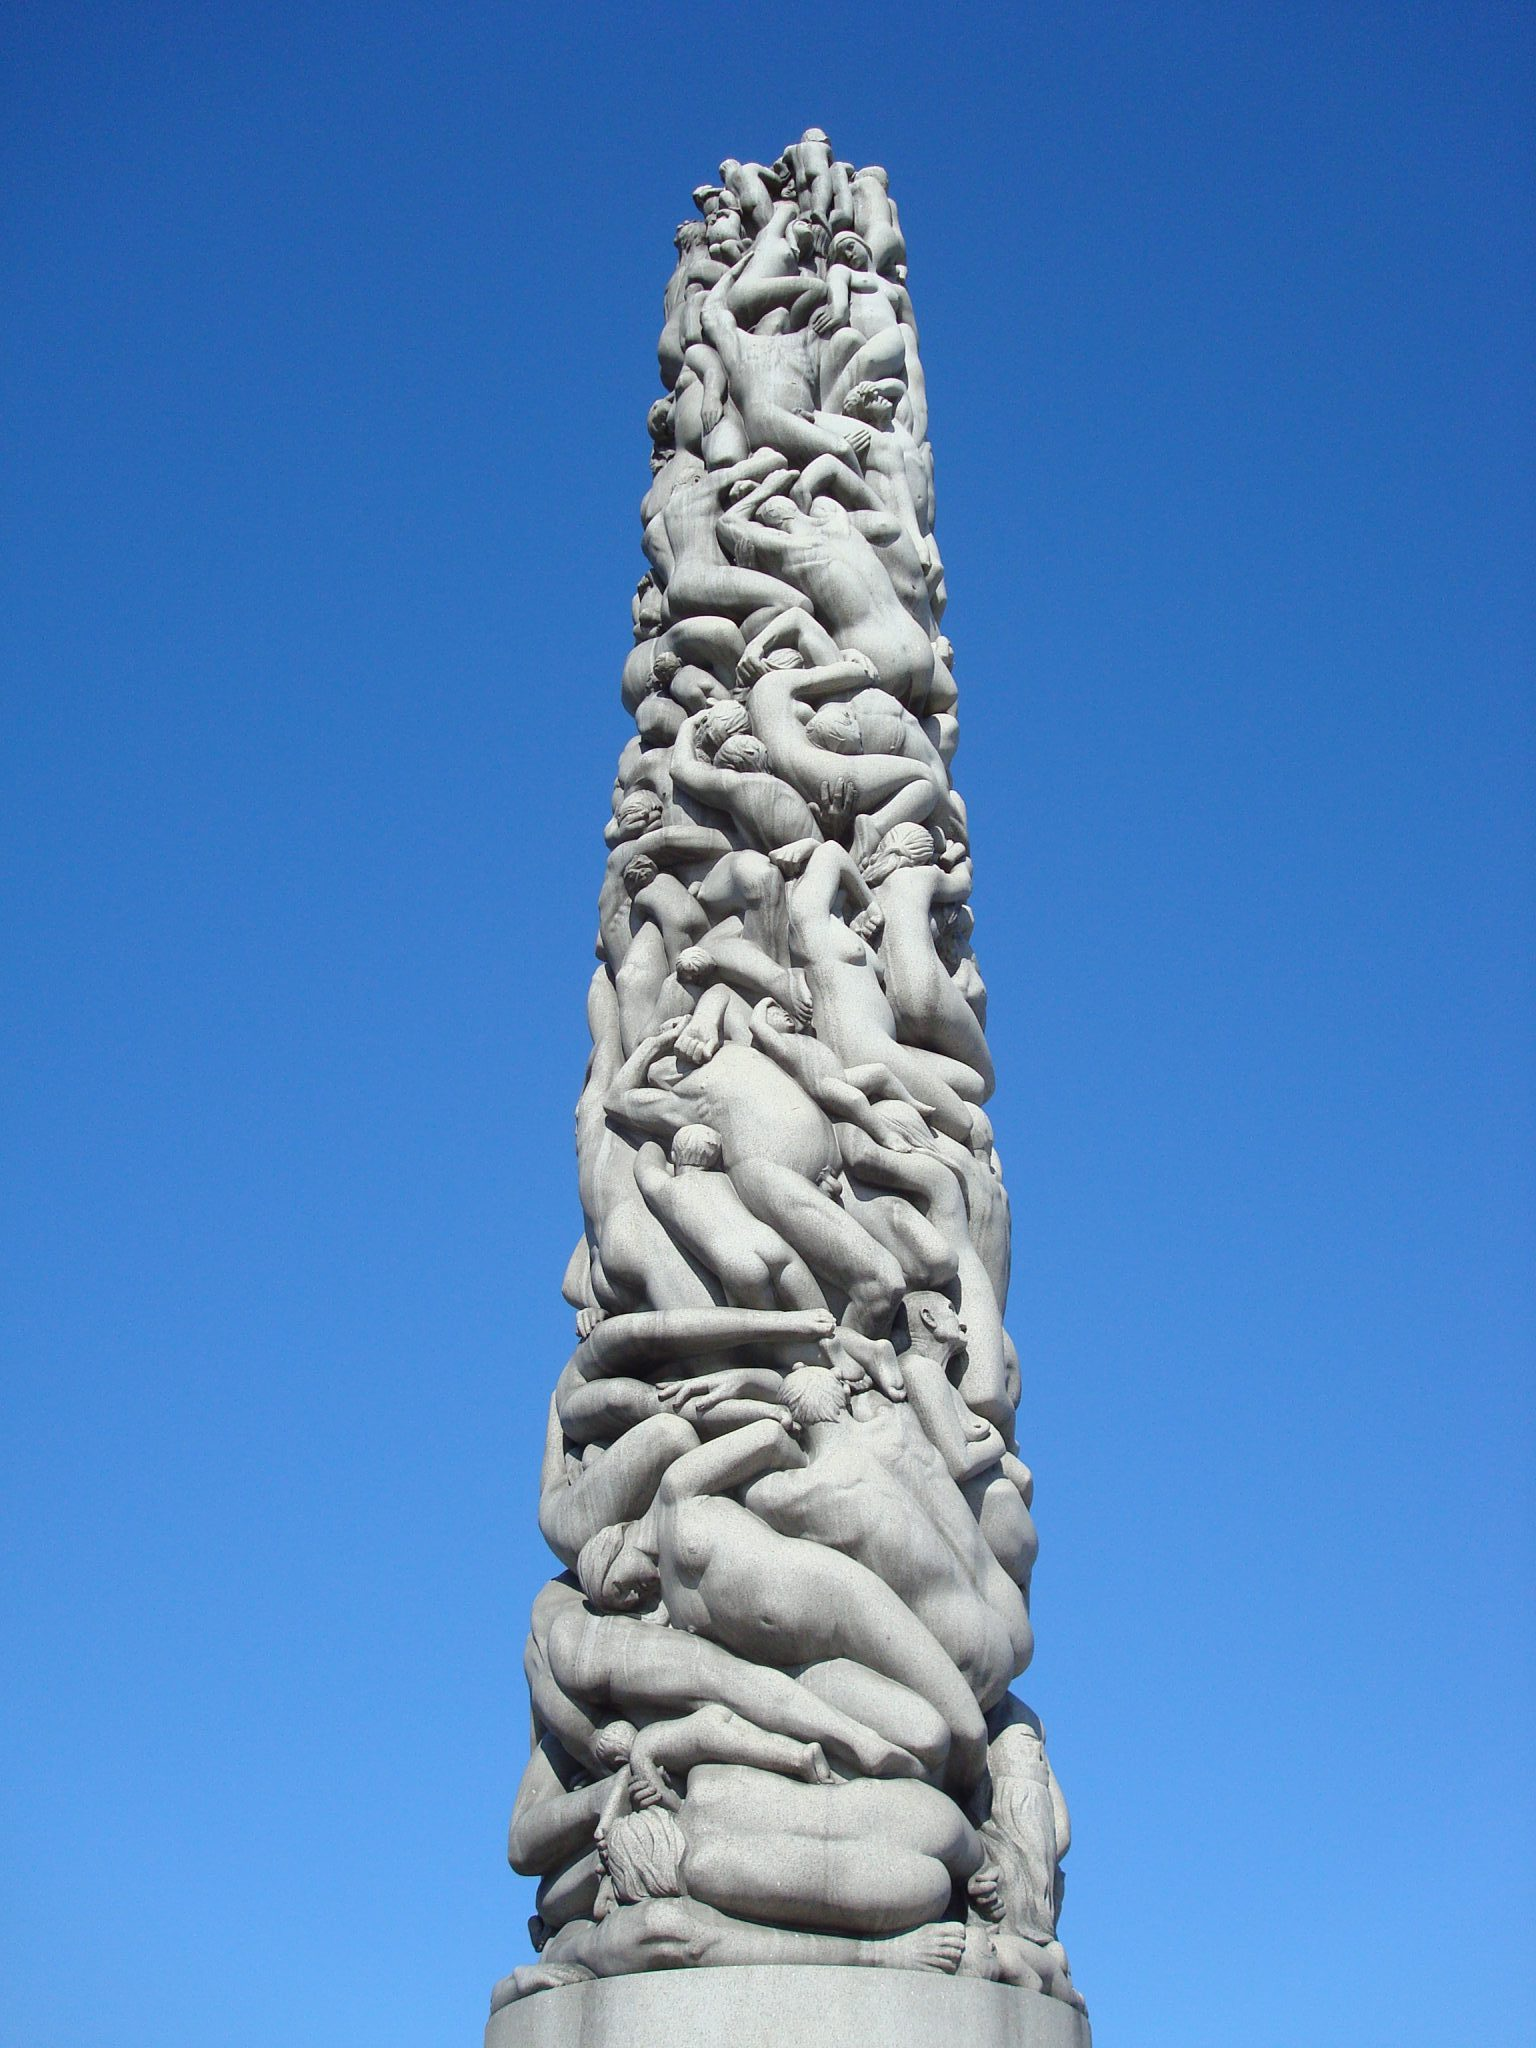 sculpture-tower-vigeland-park-oslo